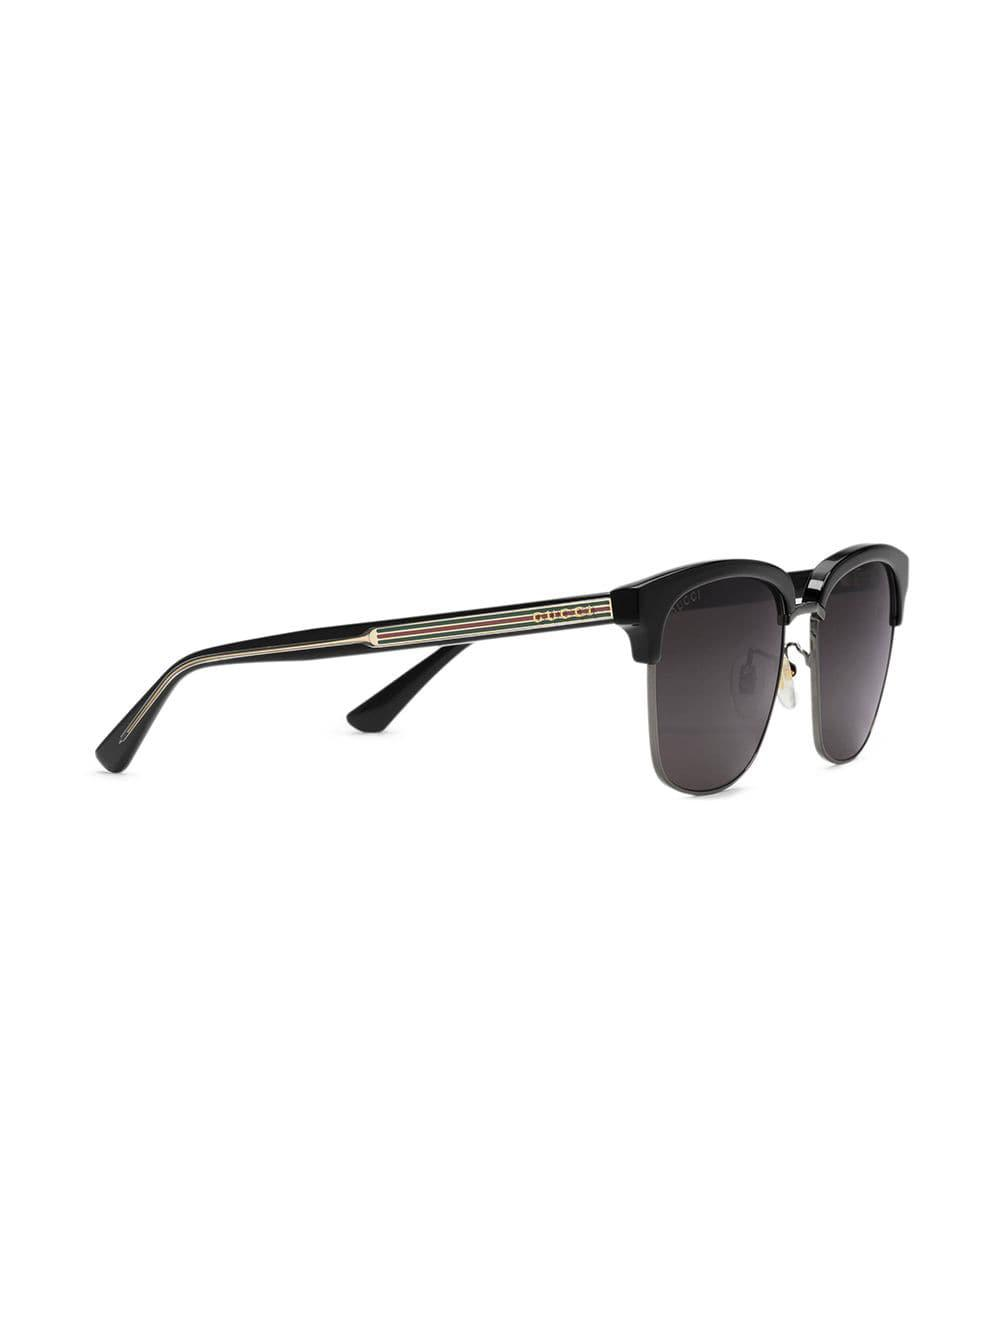 6bf650b3297ea Gucci Rectangular-frame Metal Sunglasses in Black for Men - Lyst